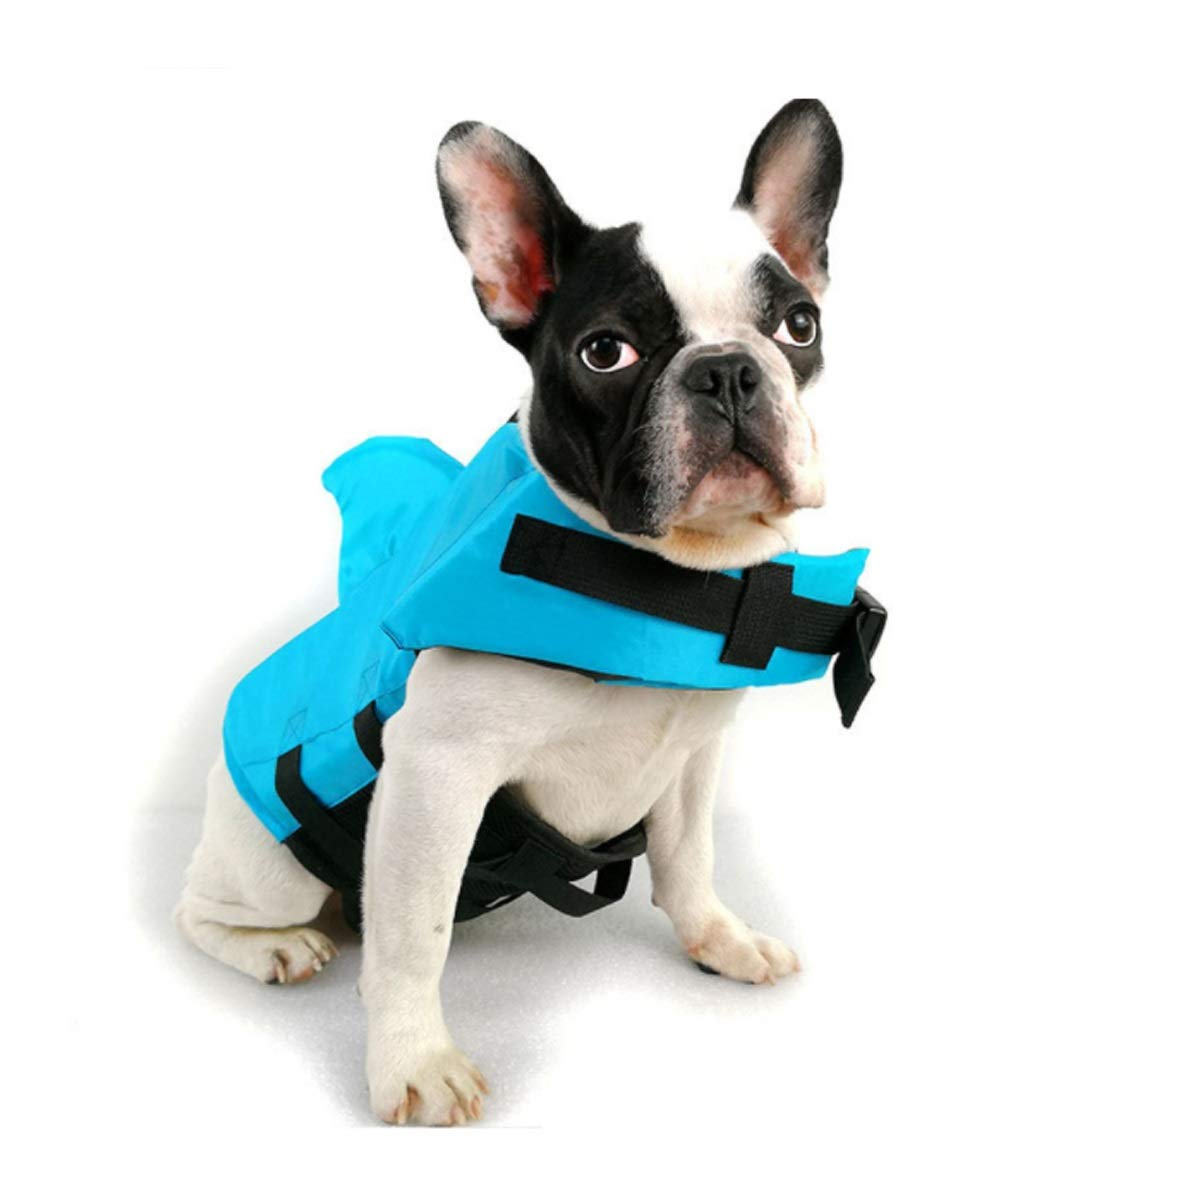 bluee M bluee M Large and Small Dog Pet Swimsuit, Dog Swimsuit, Professional Life Jacket (color   bluee, Size   M)